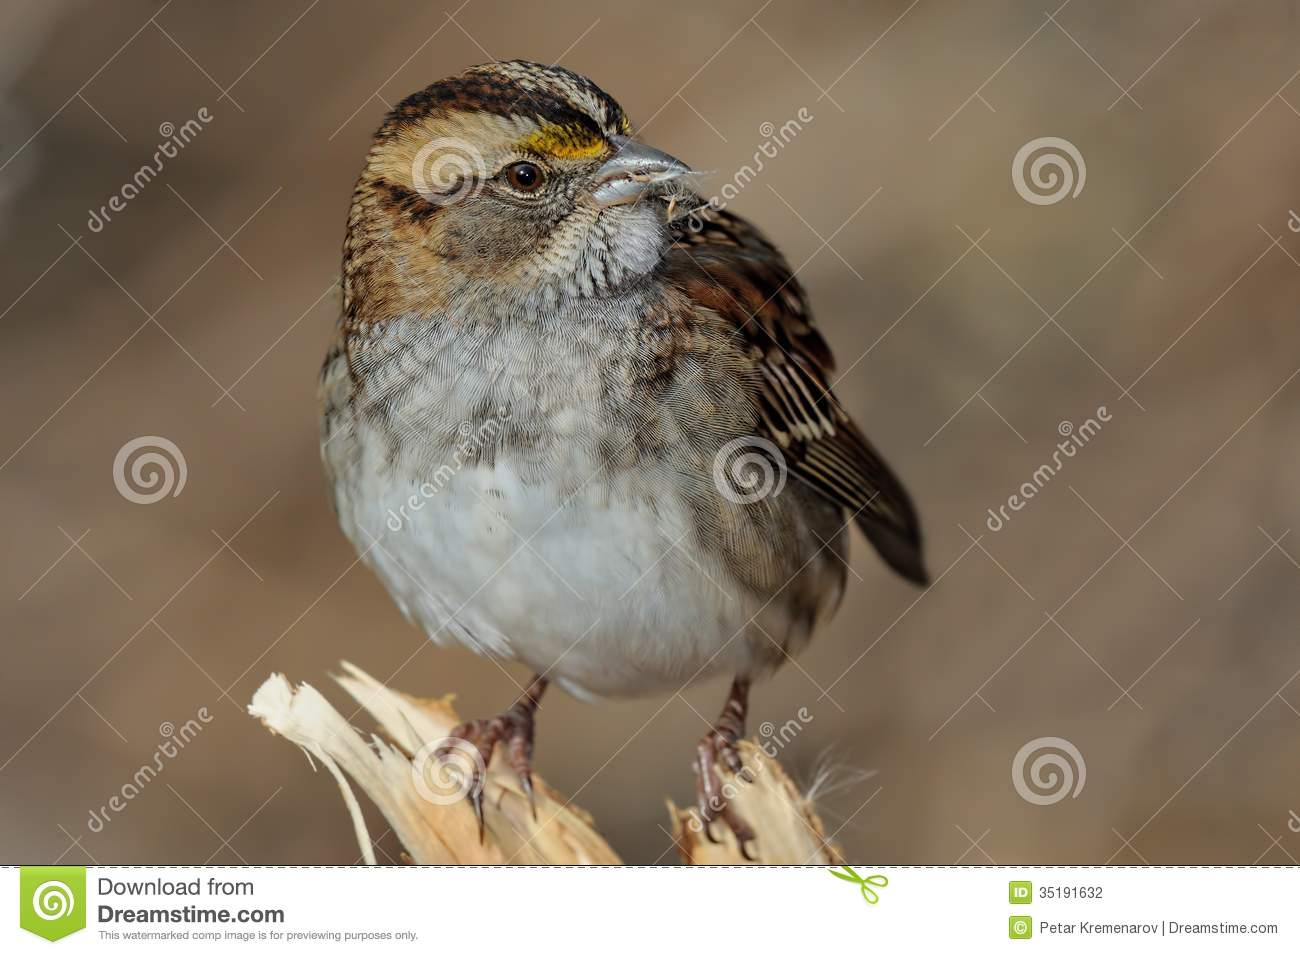 White-crowned Sparrow clipart #11, Download drawings